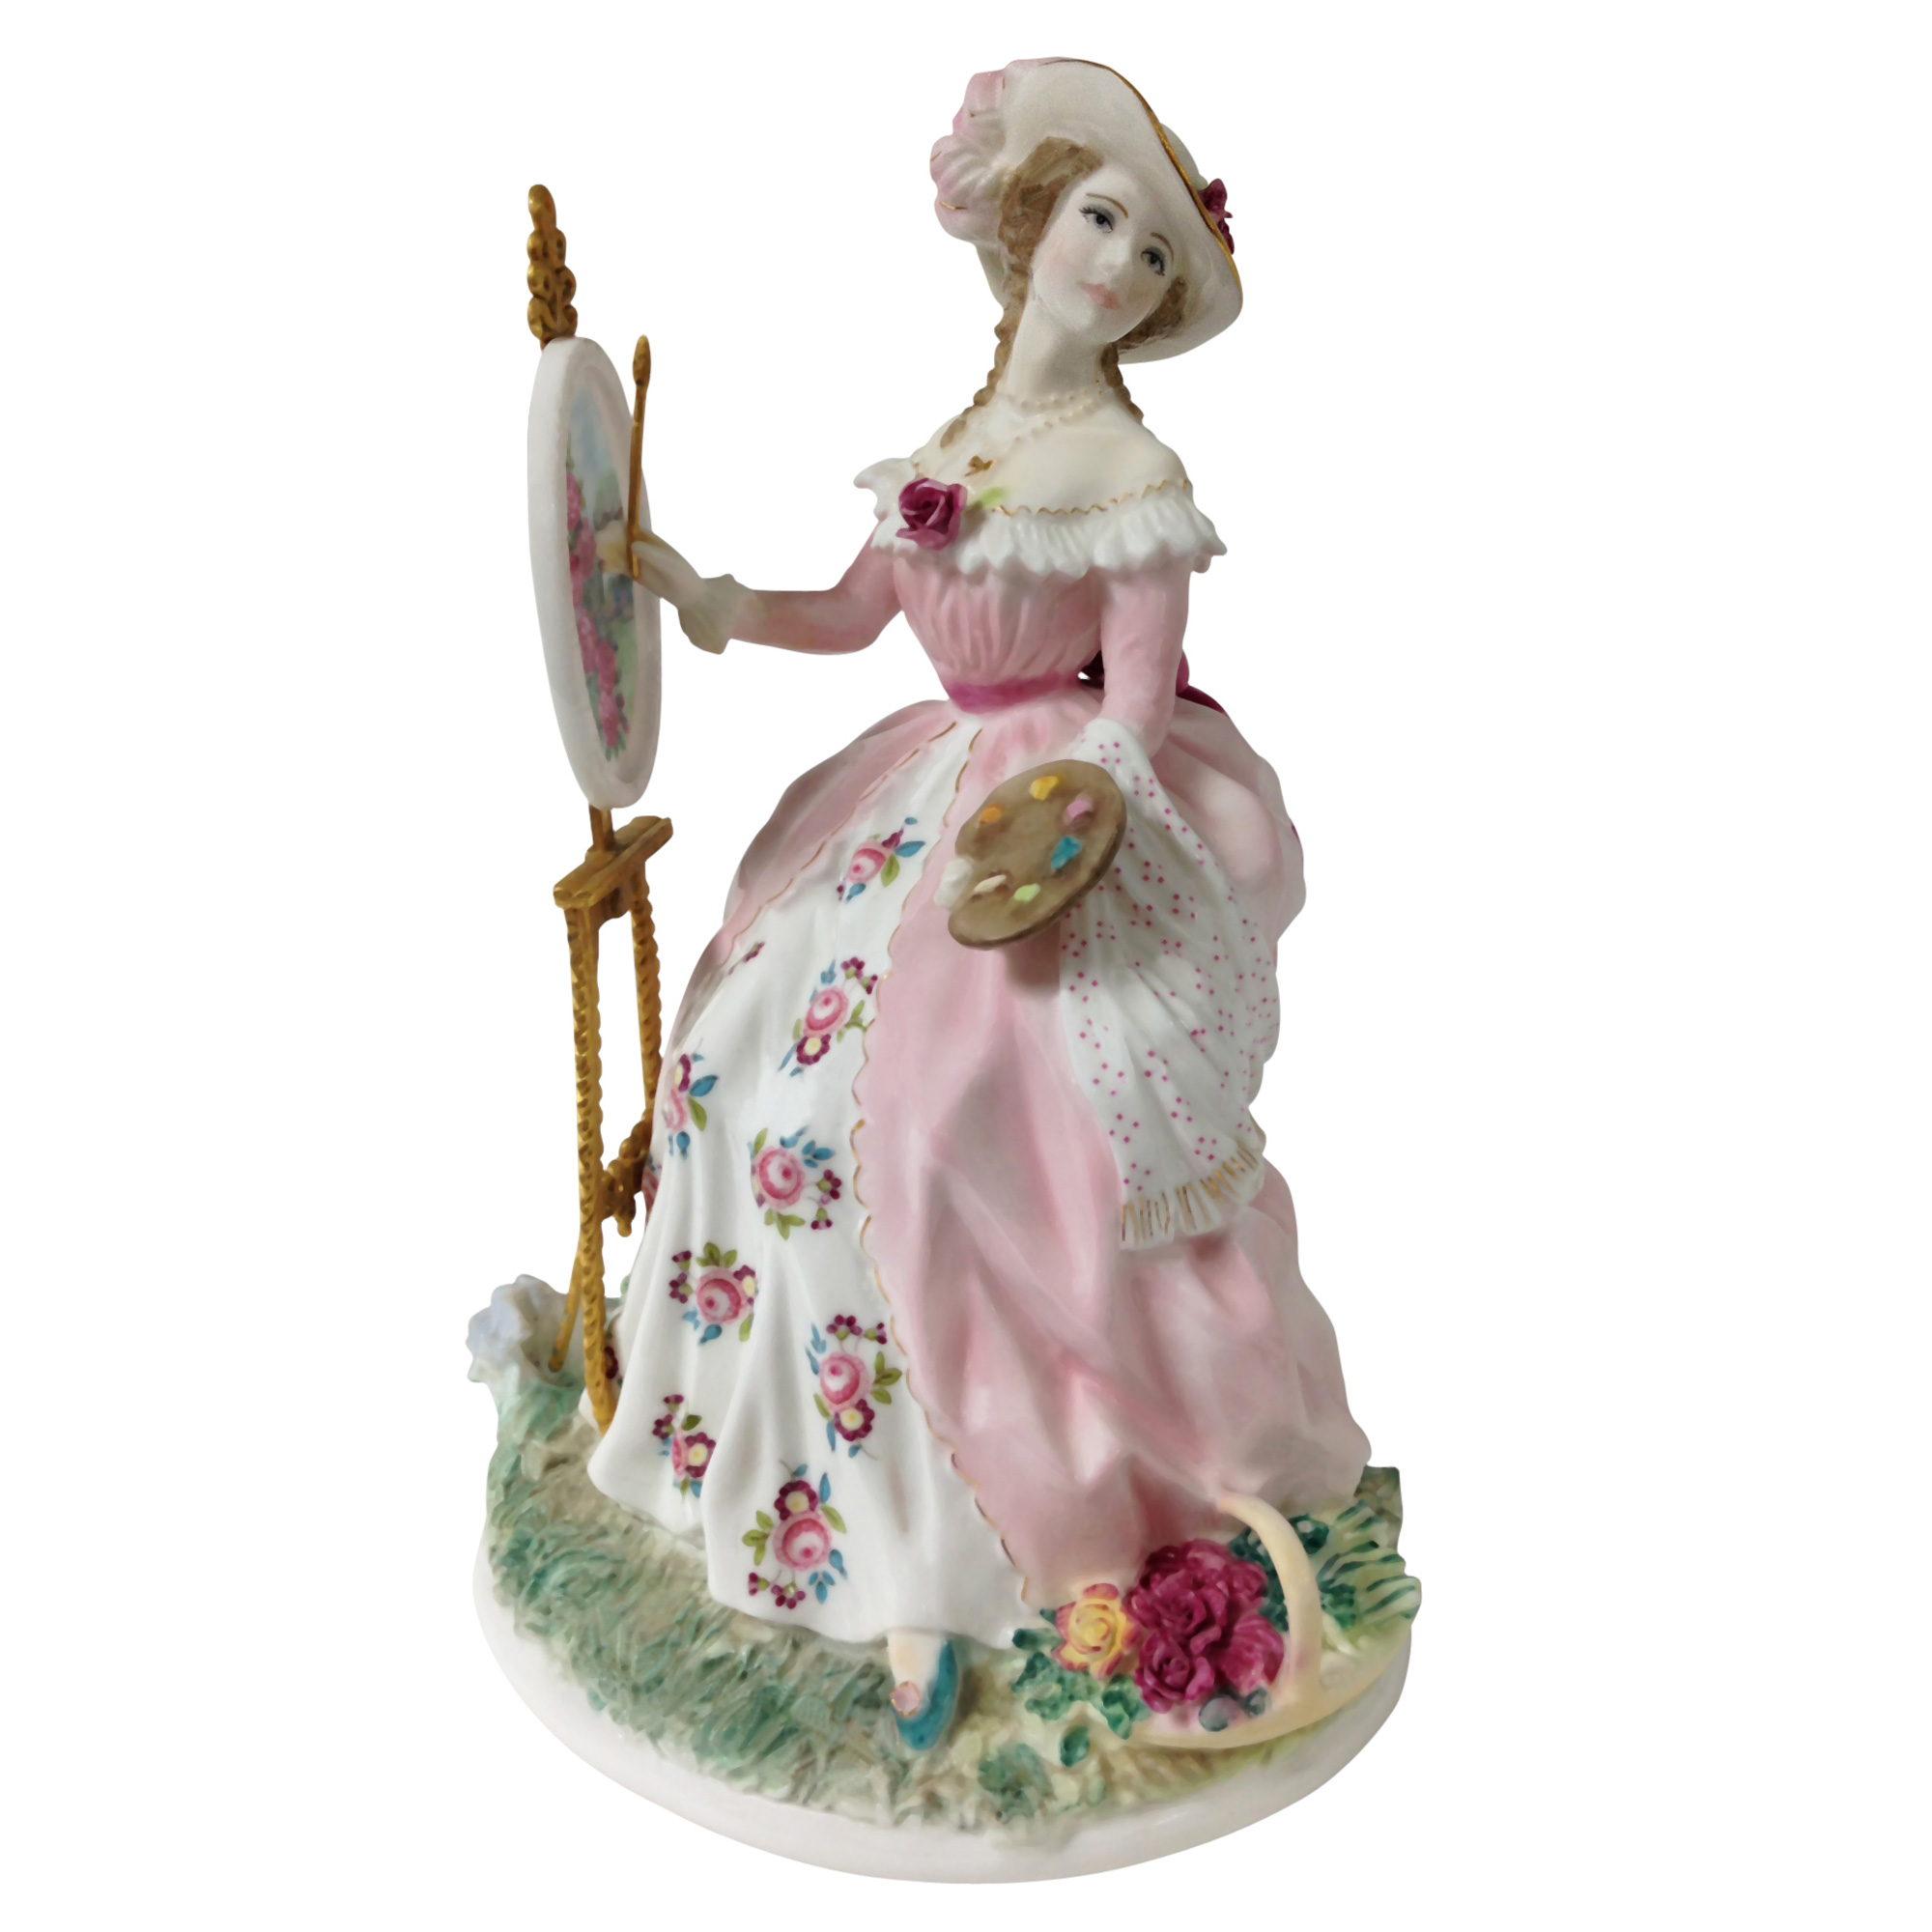 Painting - Royal Worcester Figurine